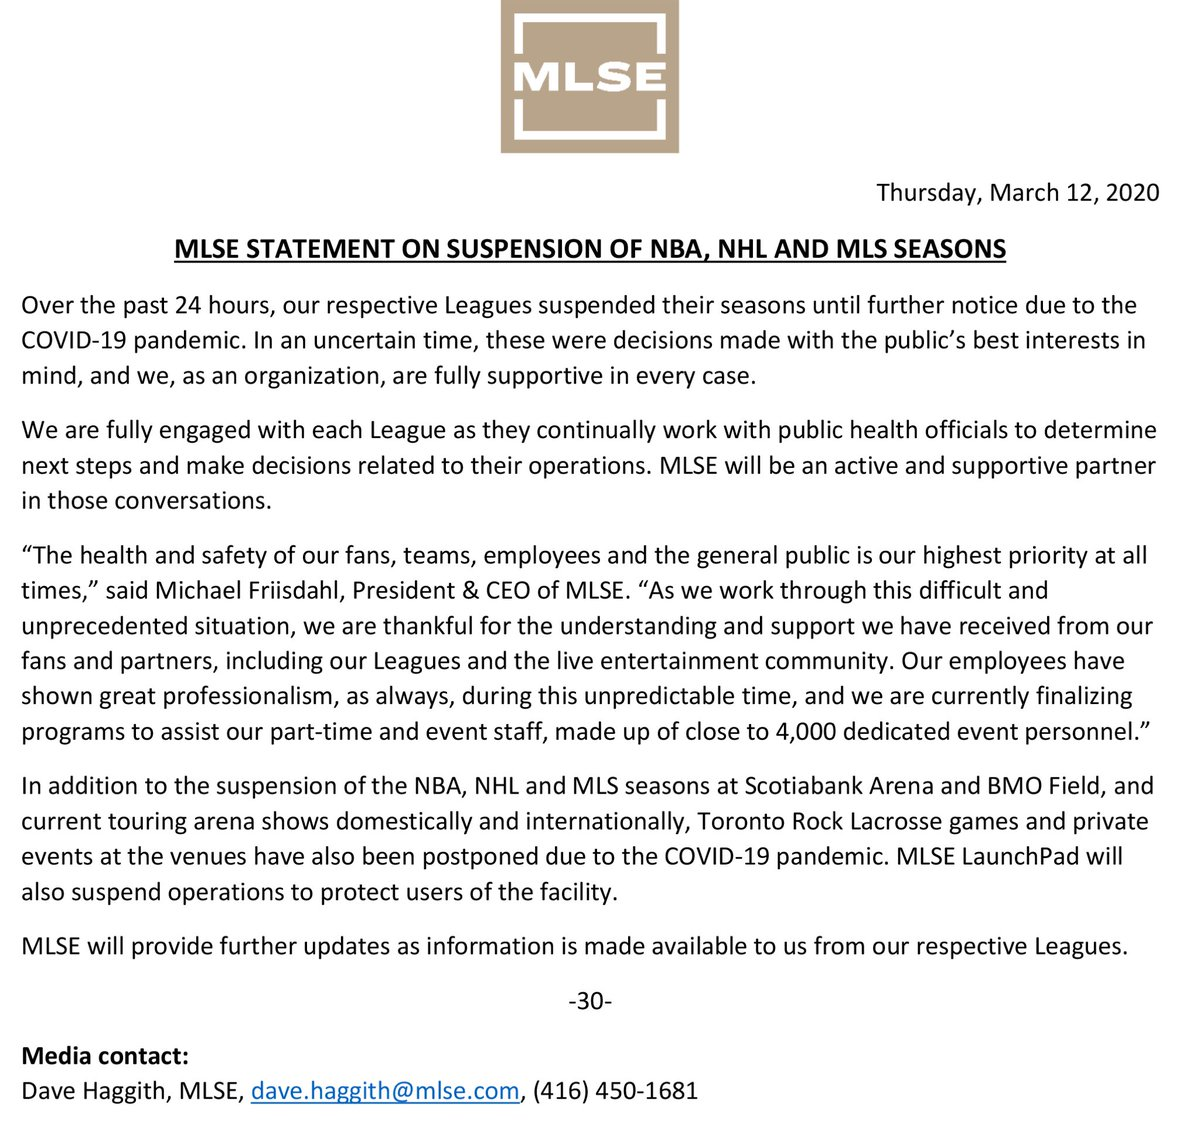 MLSE statement on suspension of NBA, NHL and MLS seasons.